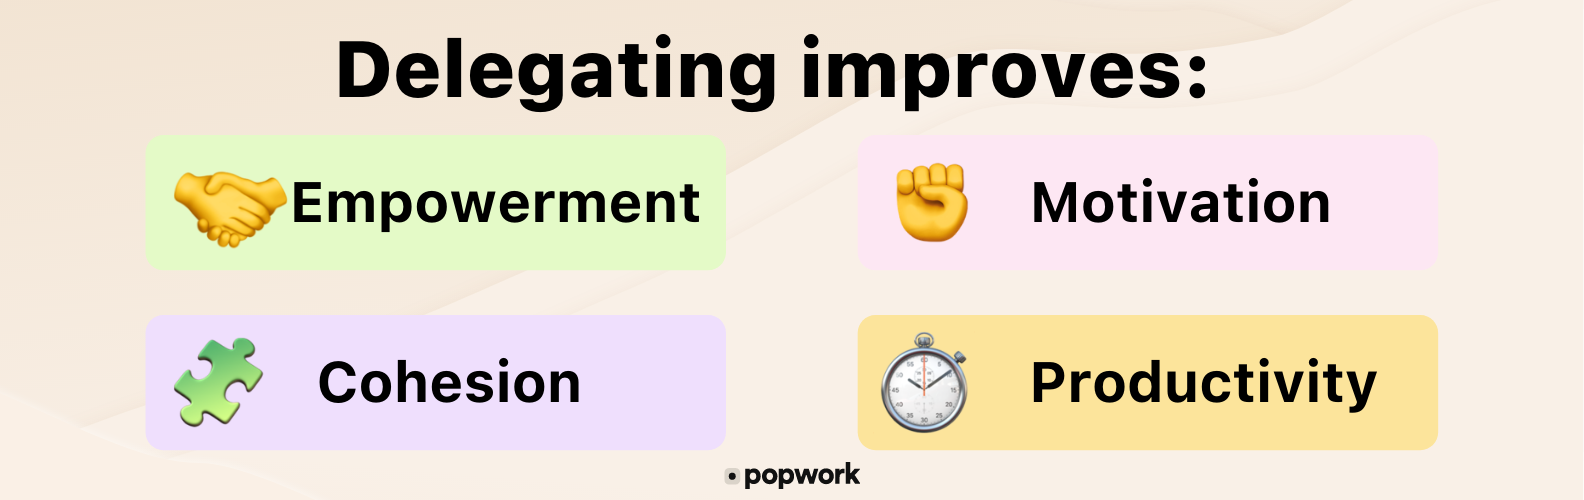 Delegating improves: empowerment, motivation, cohesion and productivity